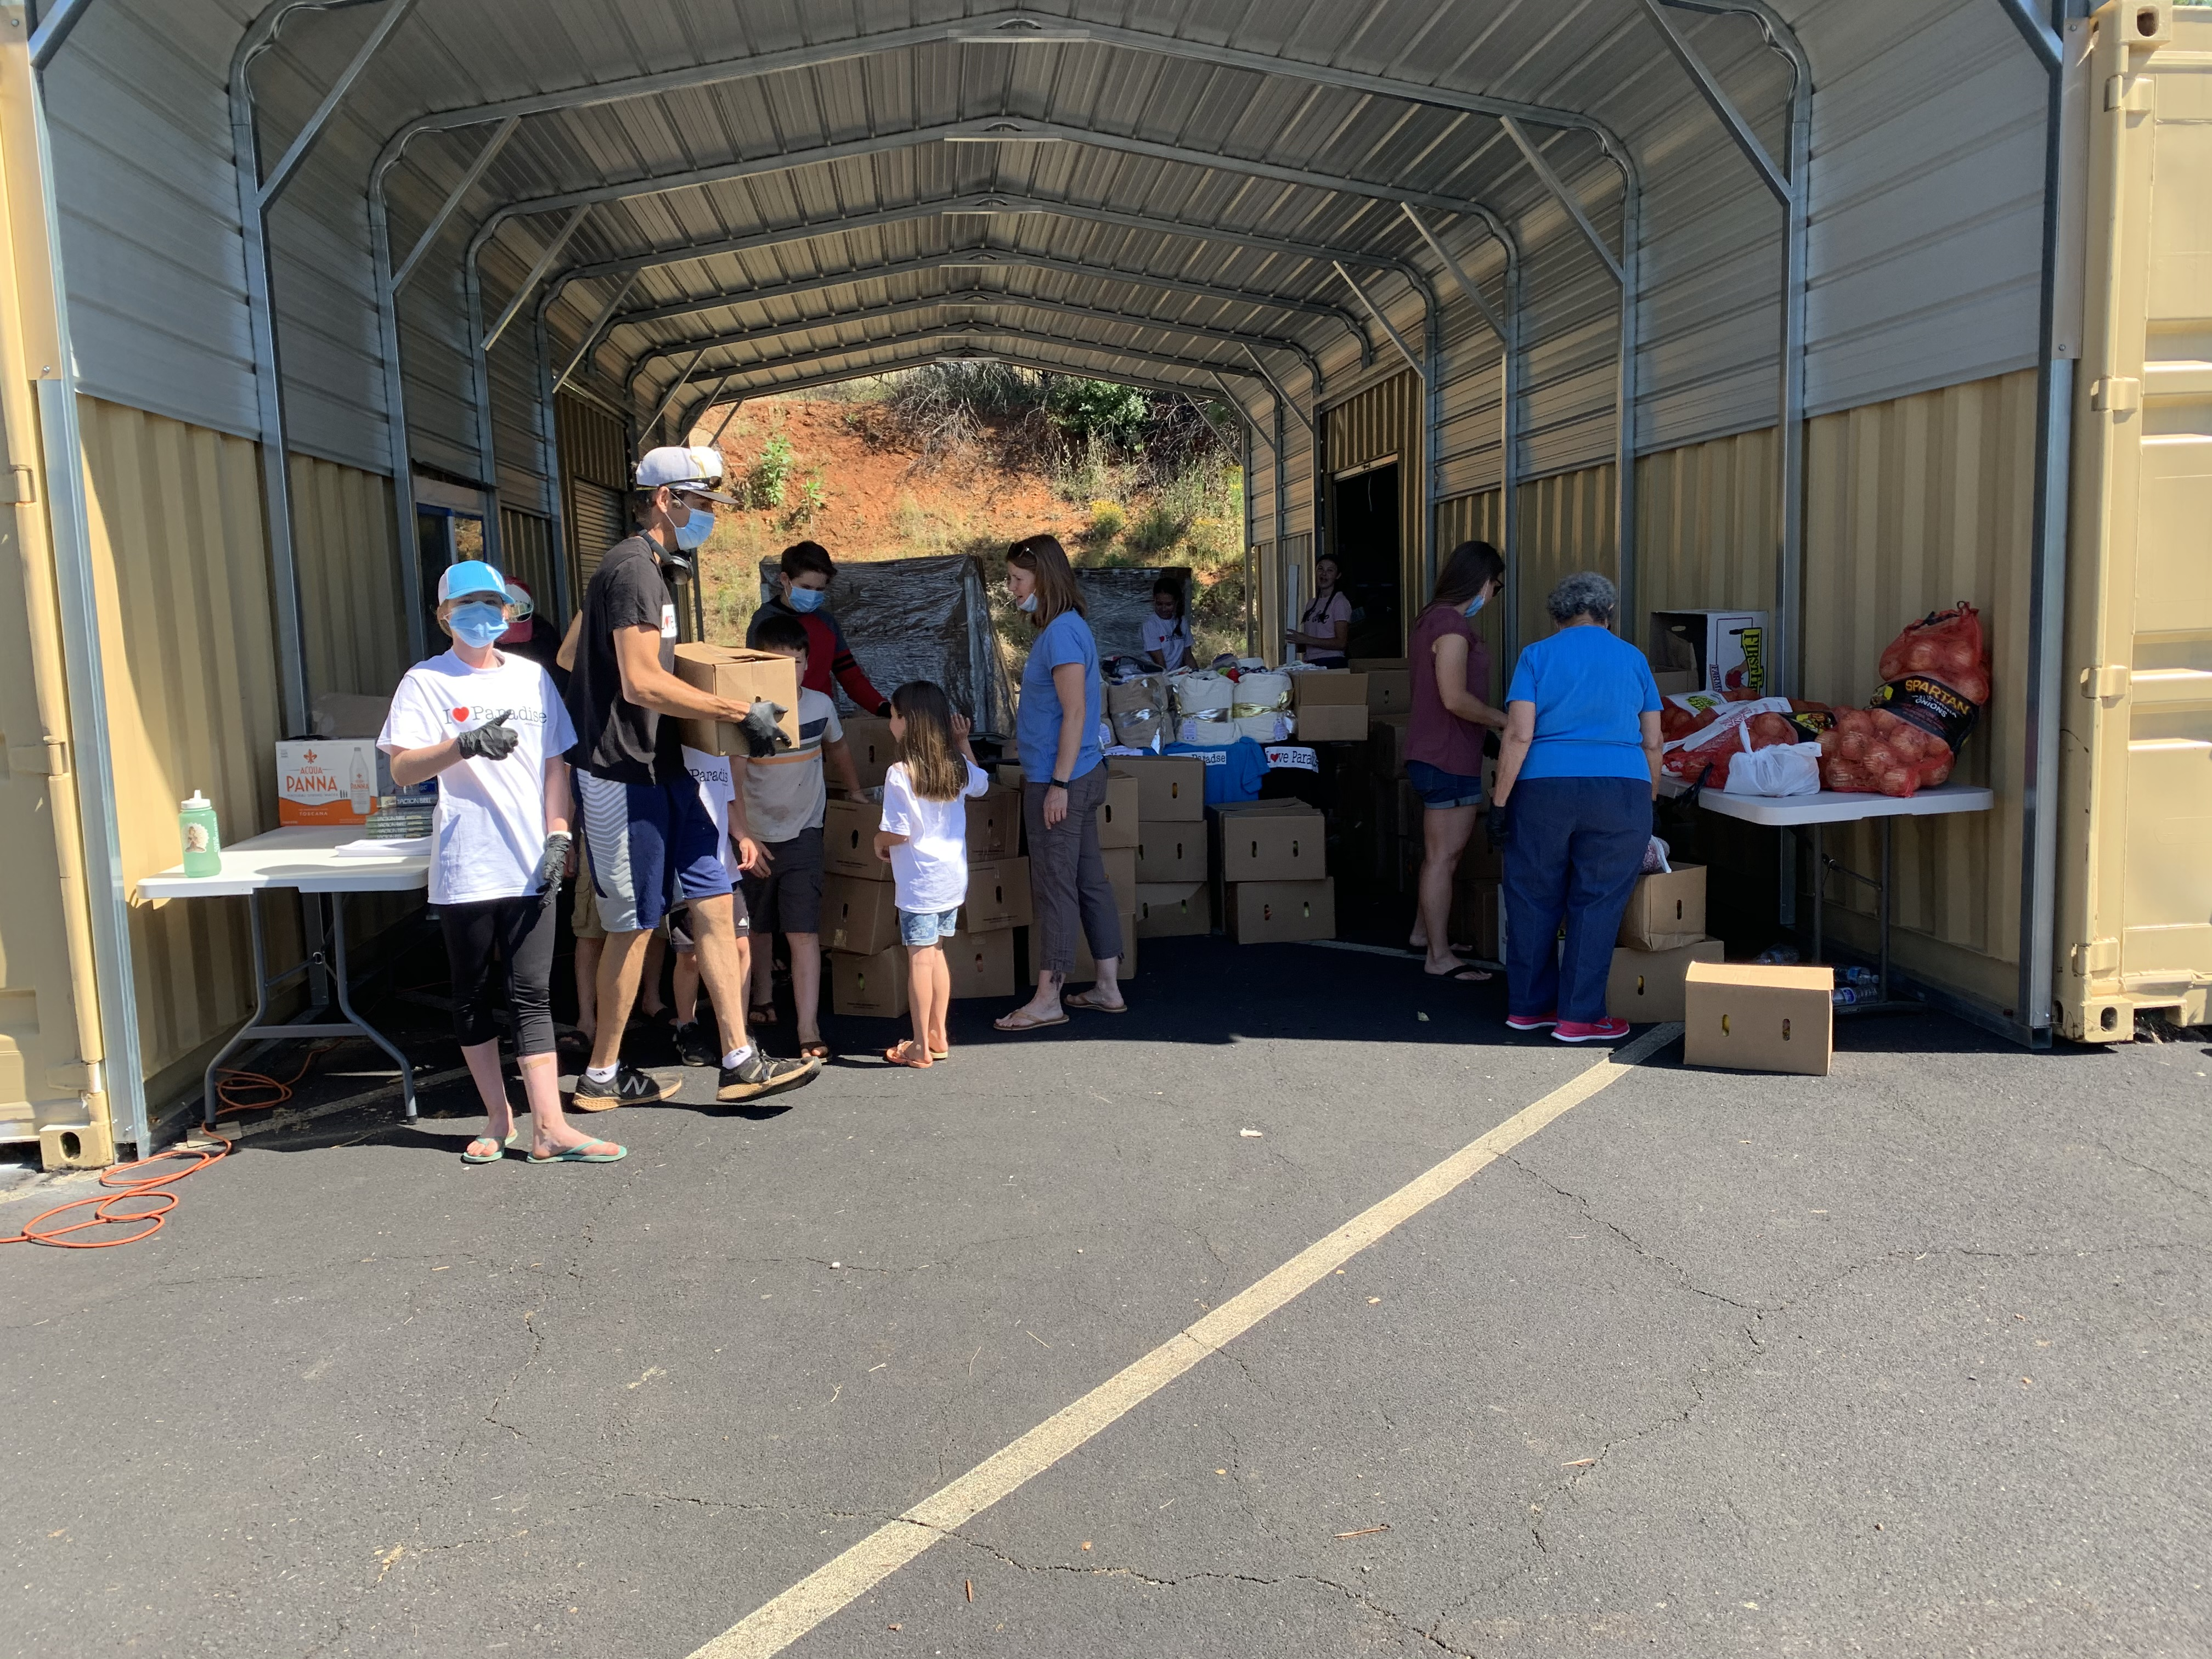 On Tuesdays, families work together filling and delivering boxes of food. Grateful to get out of the house and a safe outreach, they serve others during shelter in place.